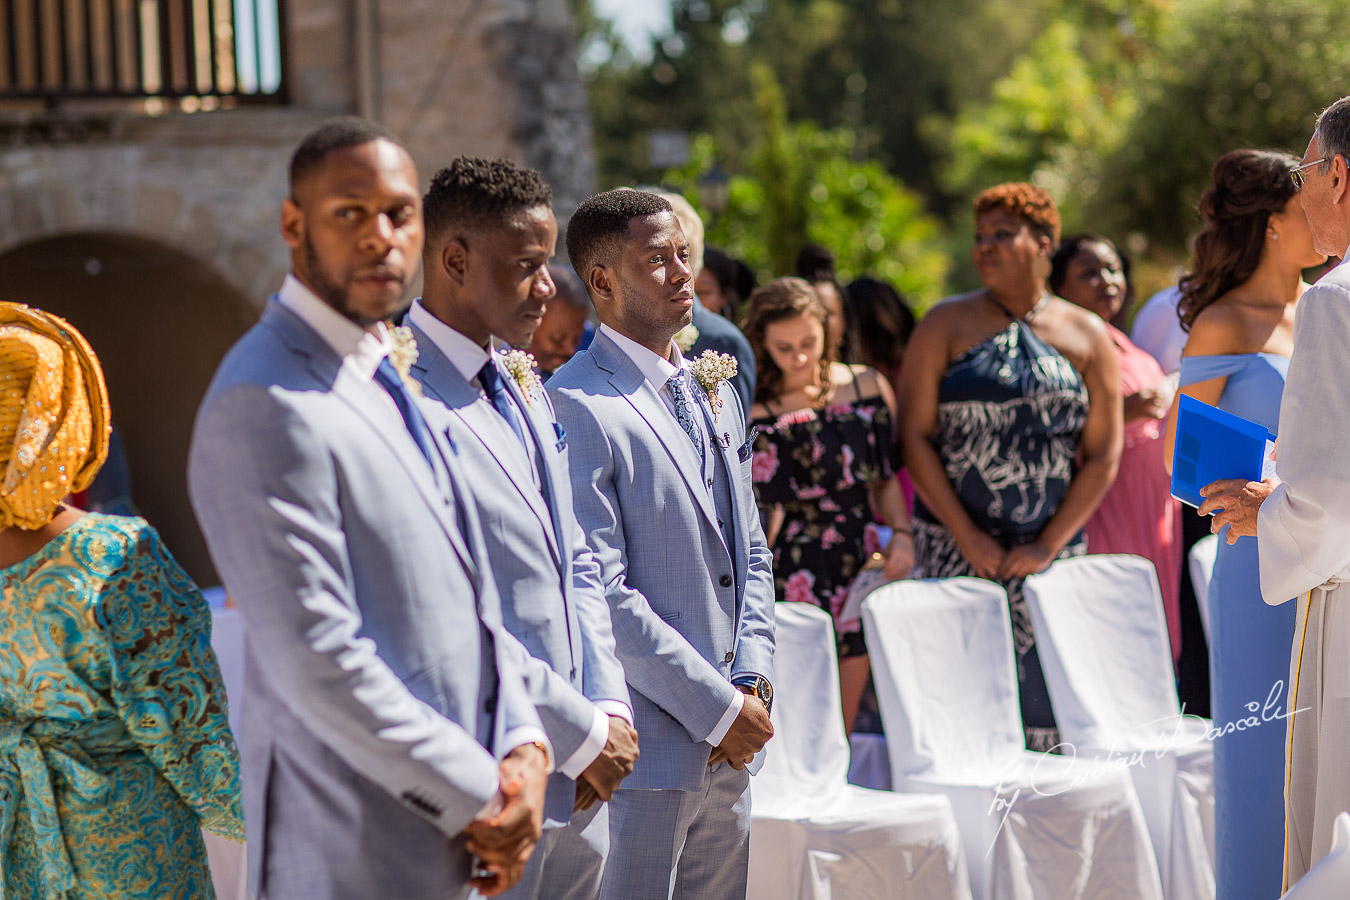 Moments with the groom waiting for his bride captured at a wedding at Minthis Hills in Cyprus, by Cristian Dascalu.